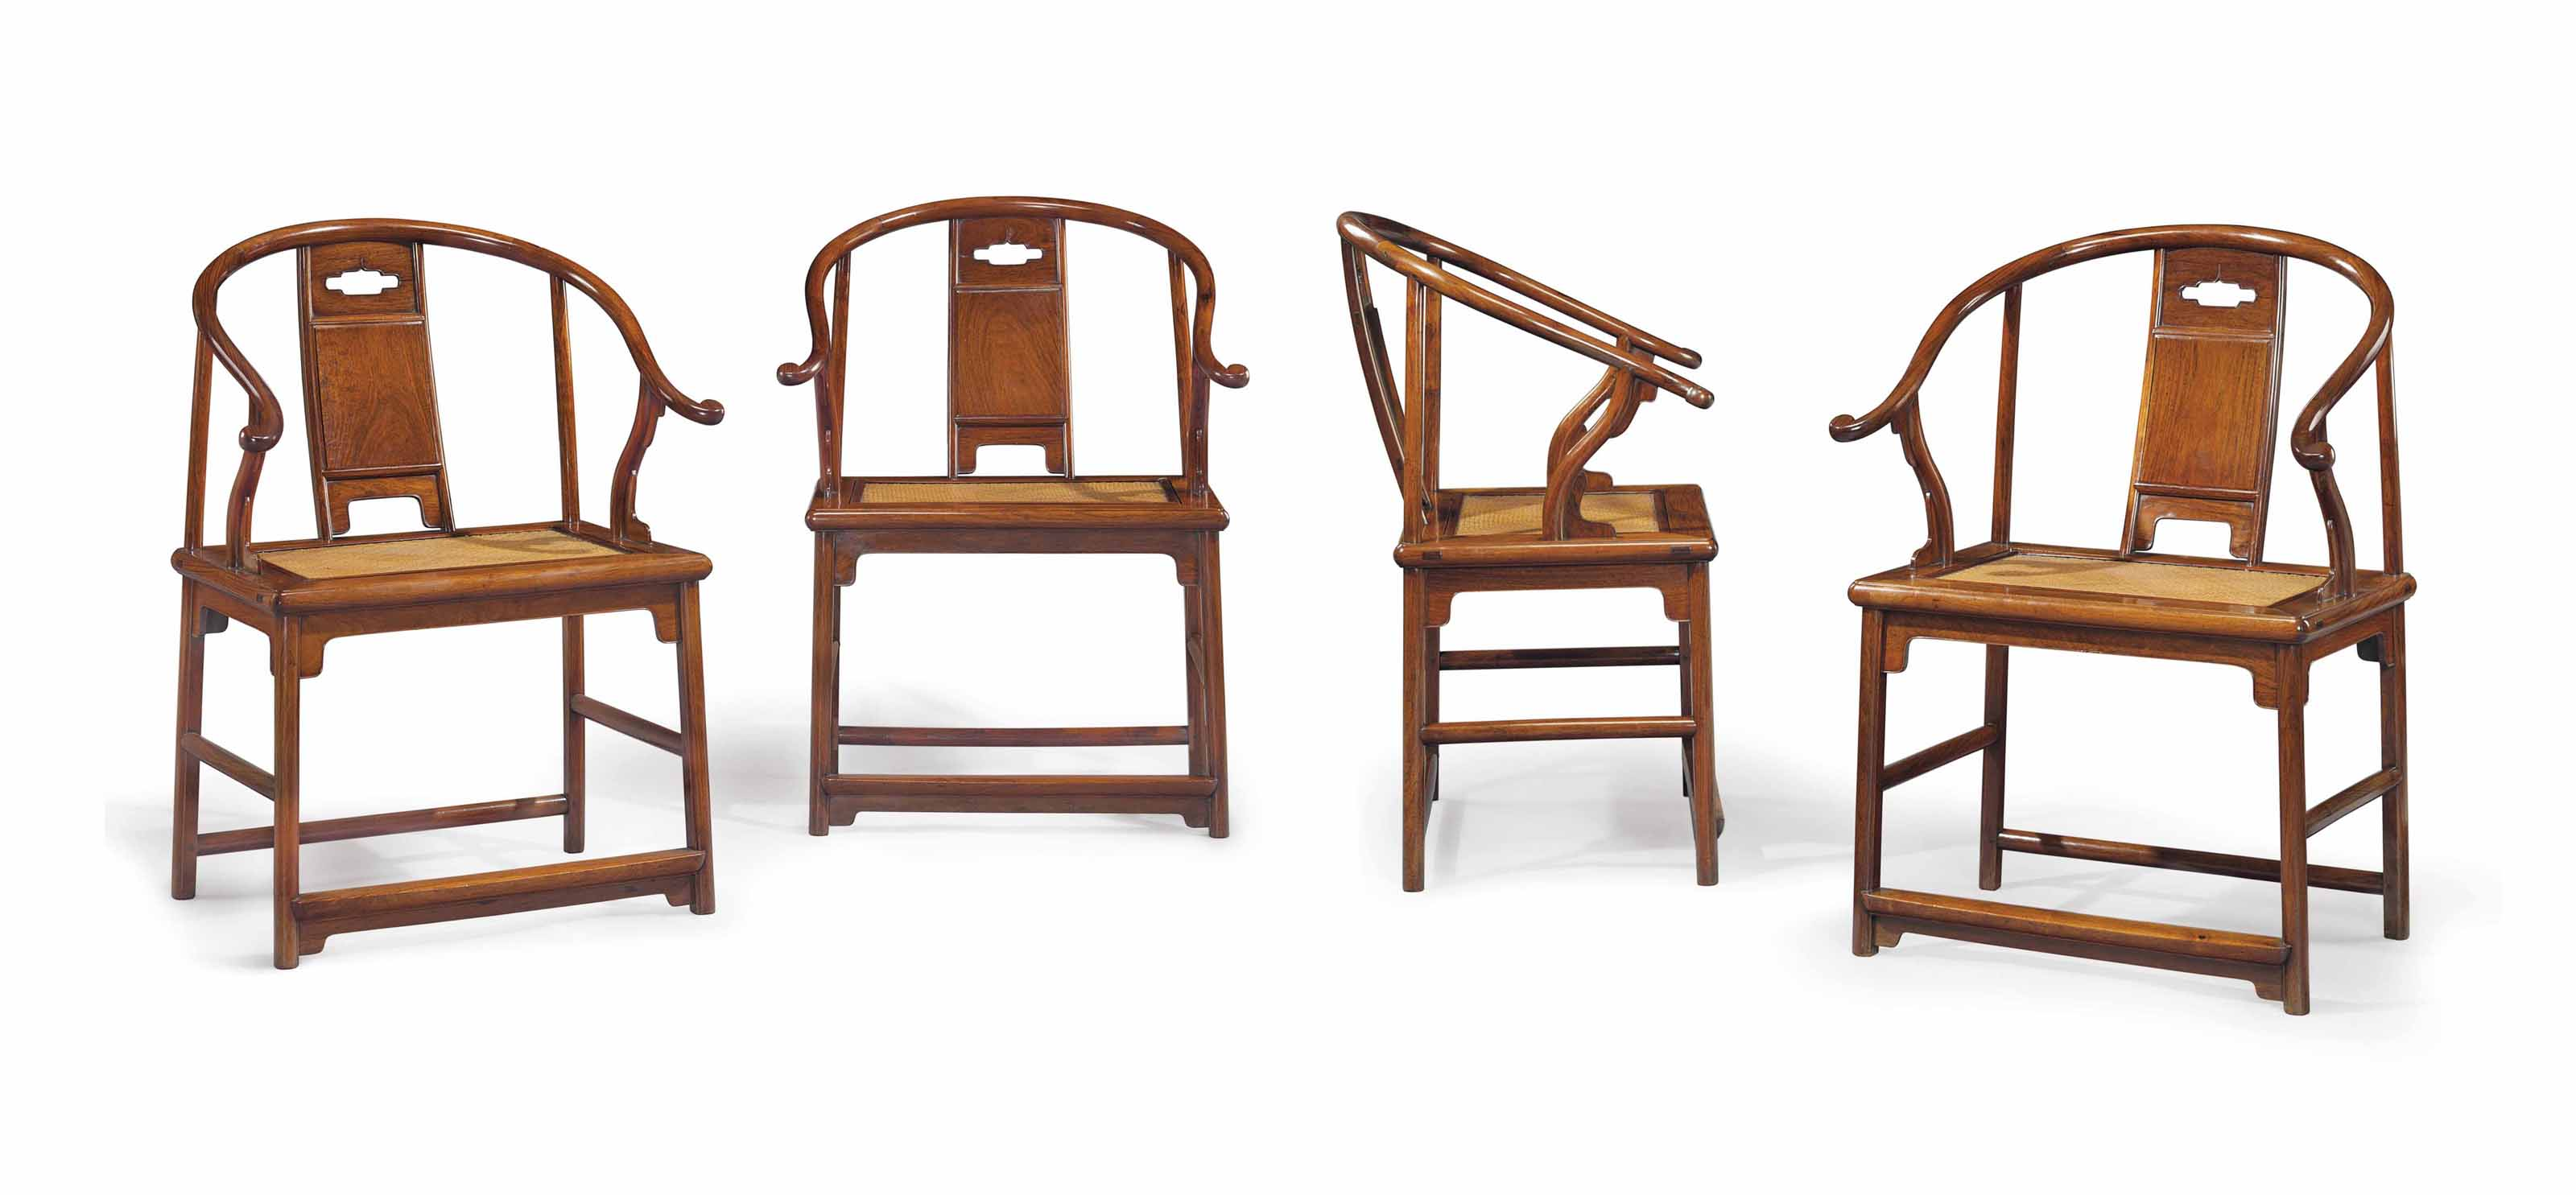 AN EXTREMELY RARE AND IMPORTANT SET OF FOUR HUANGHUALI HORSESHOE-BACK ARMCHAIRS, QUANYI